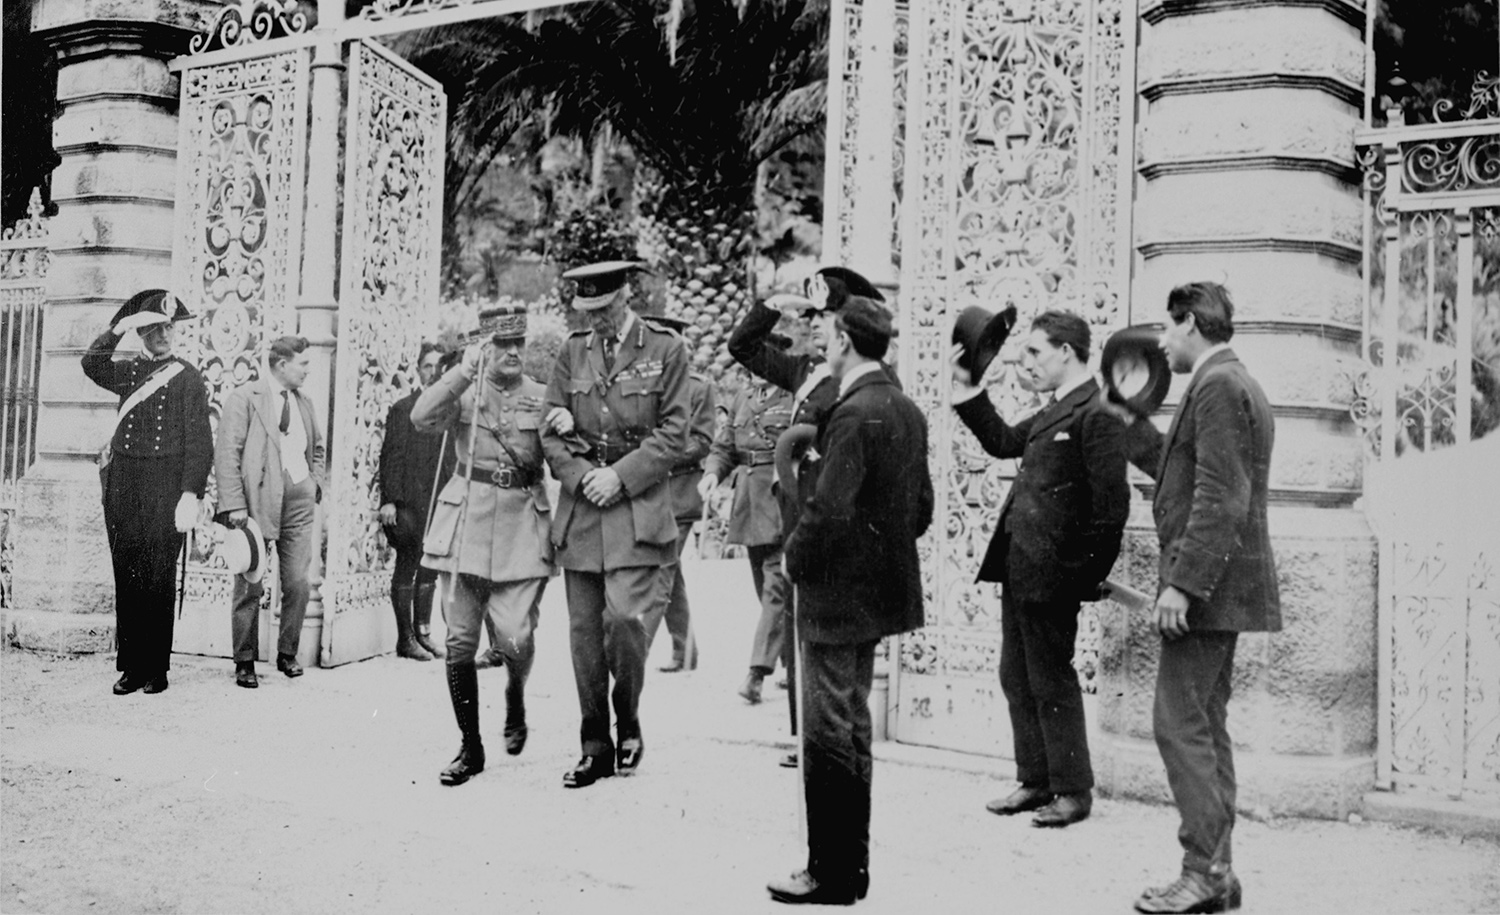 French Marshal Ferdinand Foch during the San Remo Conference in 1920. Photo 12/ Universal Images Group via Getty Images.